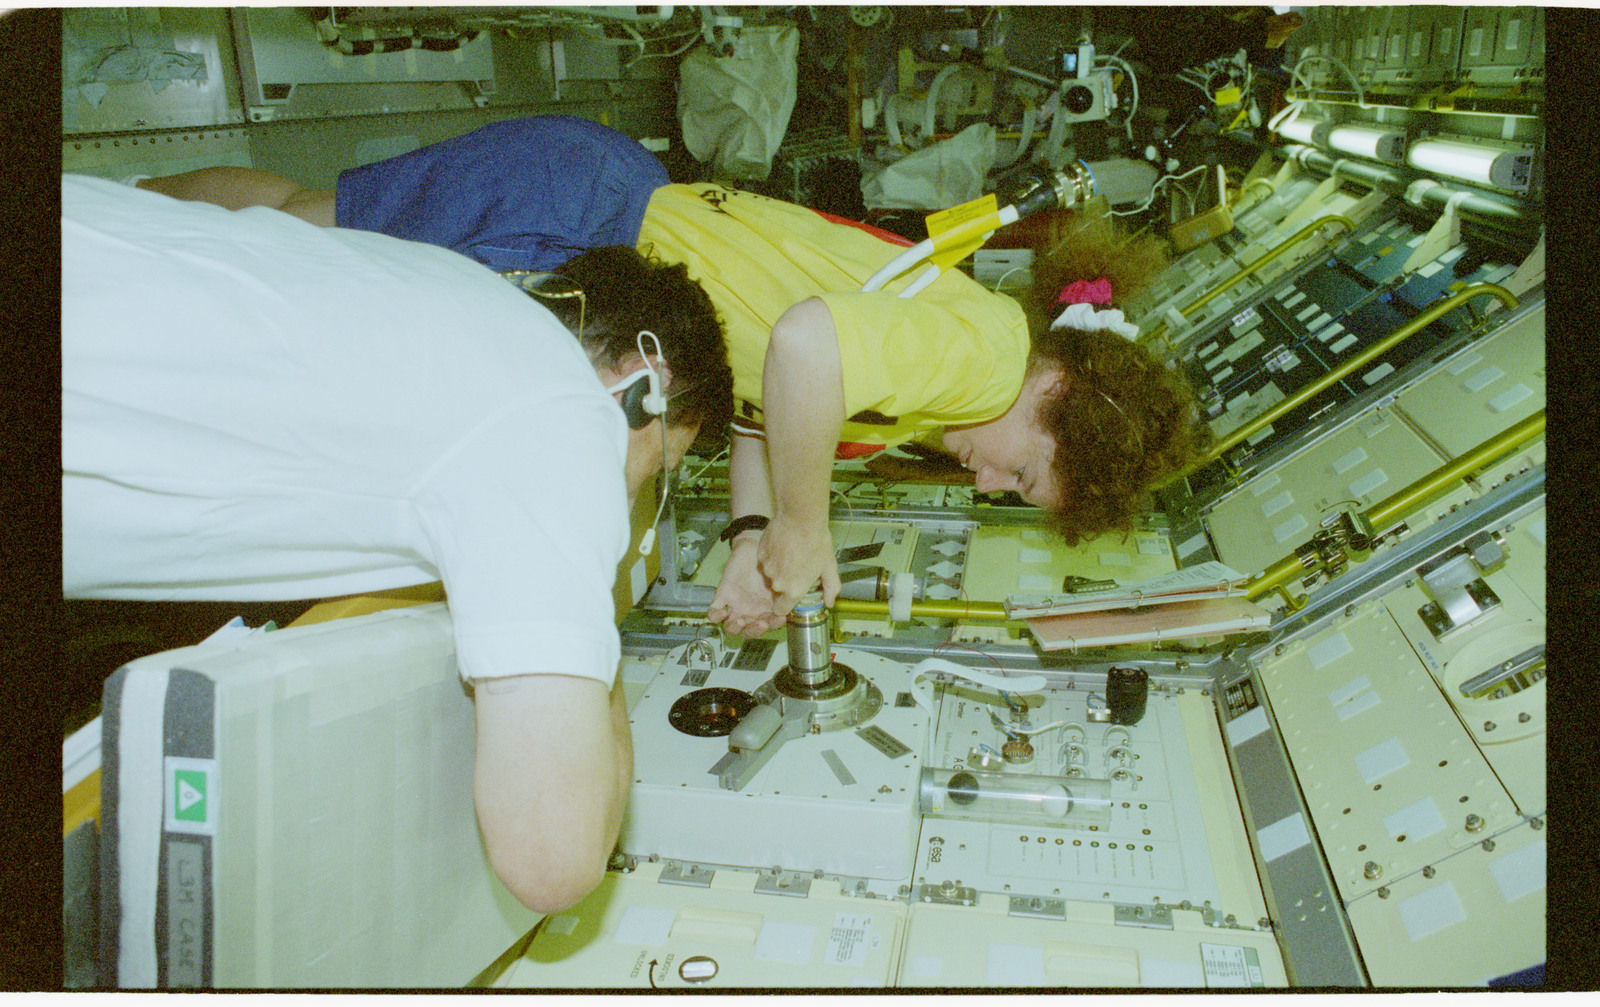 STS078-440-033 - STS-078 - AGHF, Helms inserts a sample into the LMS-1 Spacelab core facility module